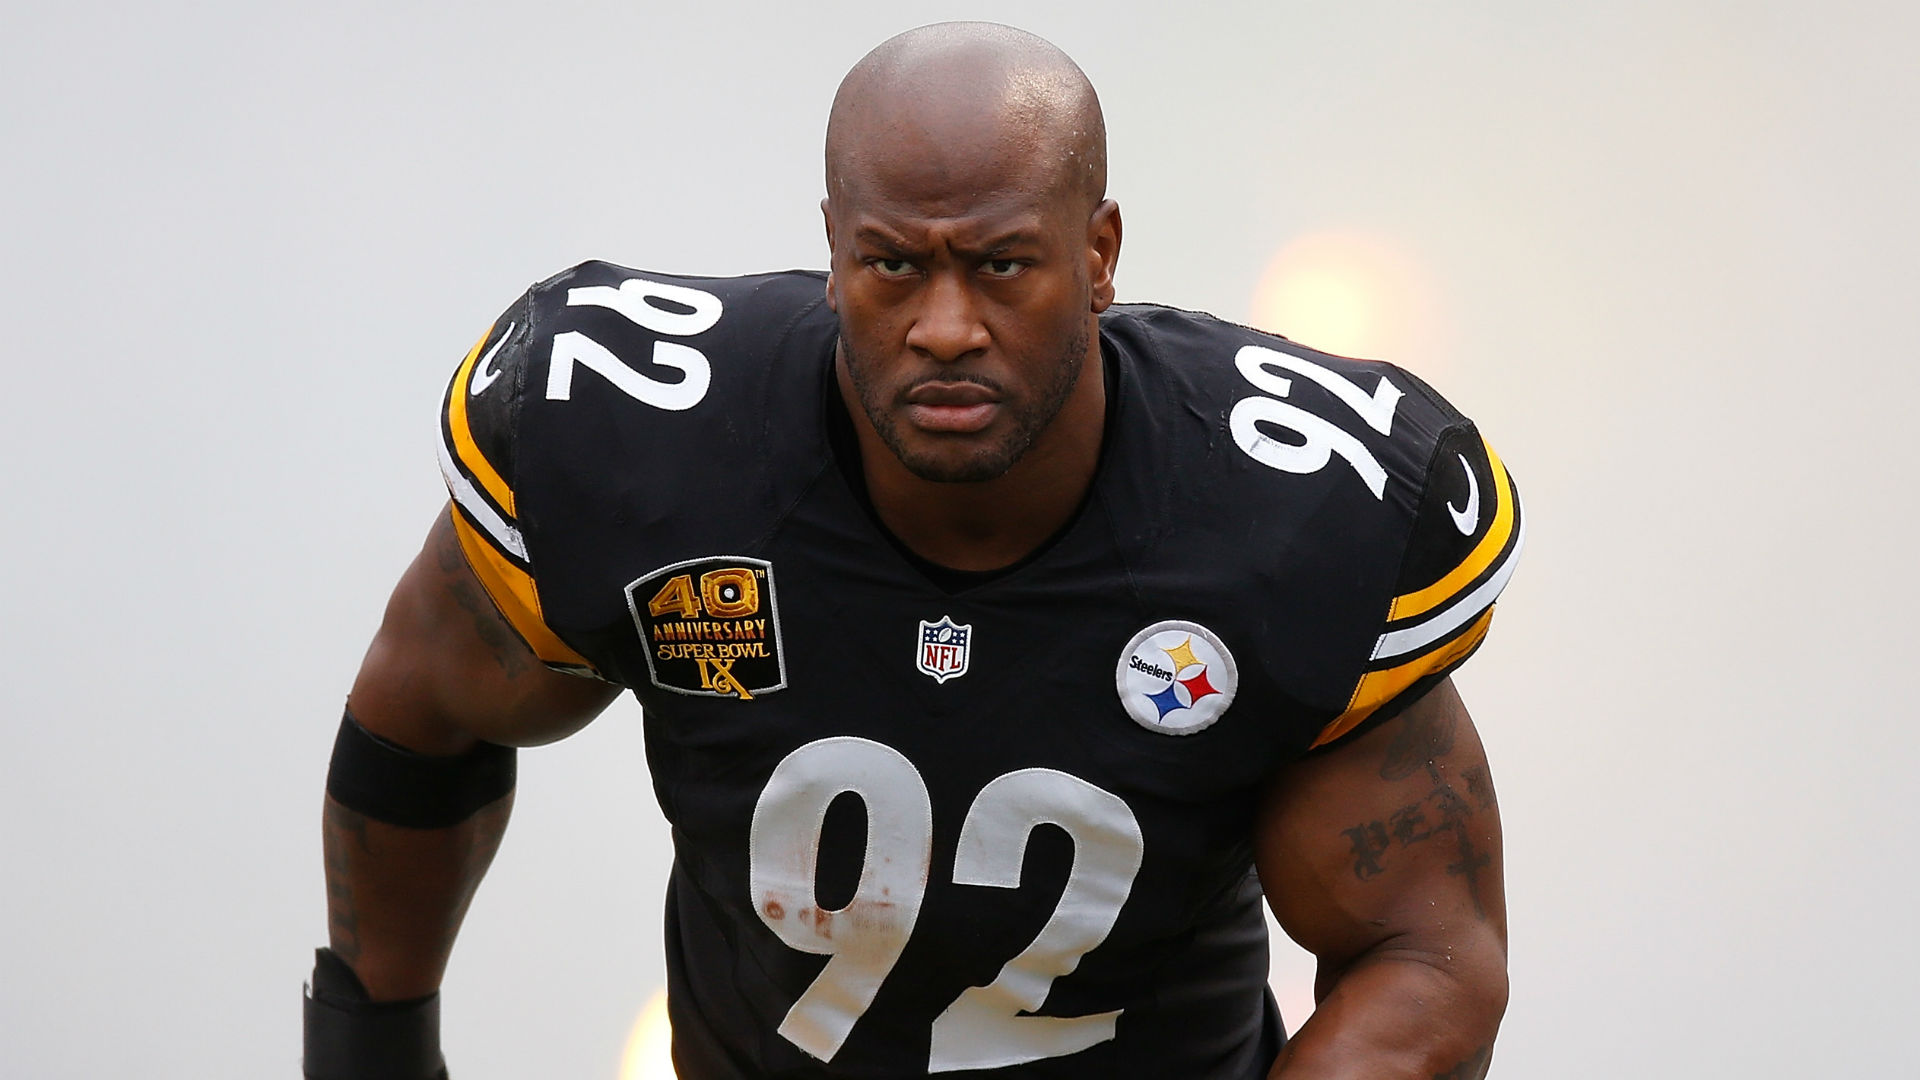 james-harrison-ftr-032115-gettyjpg_iaqrssfx0vx71d88oo04d59qb James Harrison Bench Press